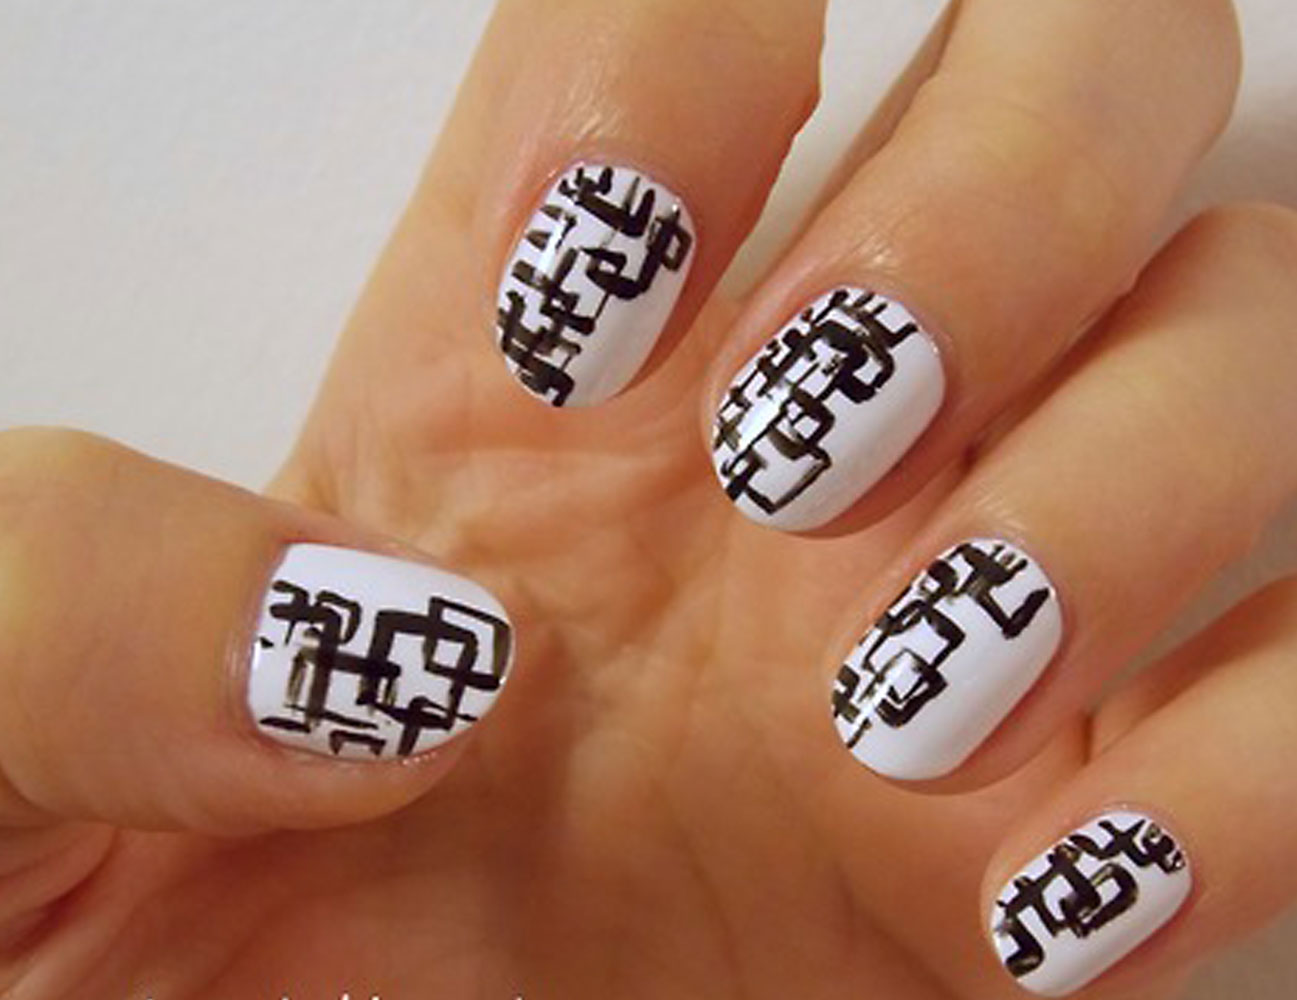 black and white nail art designs 24 25 Unique Black and White Nail Art Designs 2015 25 Unique Black and White Nail Art Designs 2015 black and white nail art designs 24